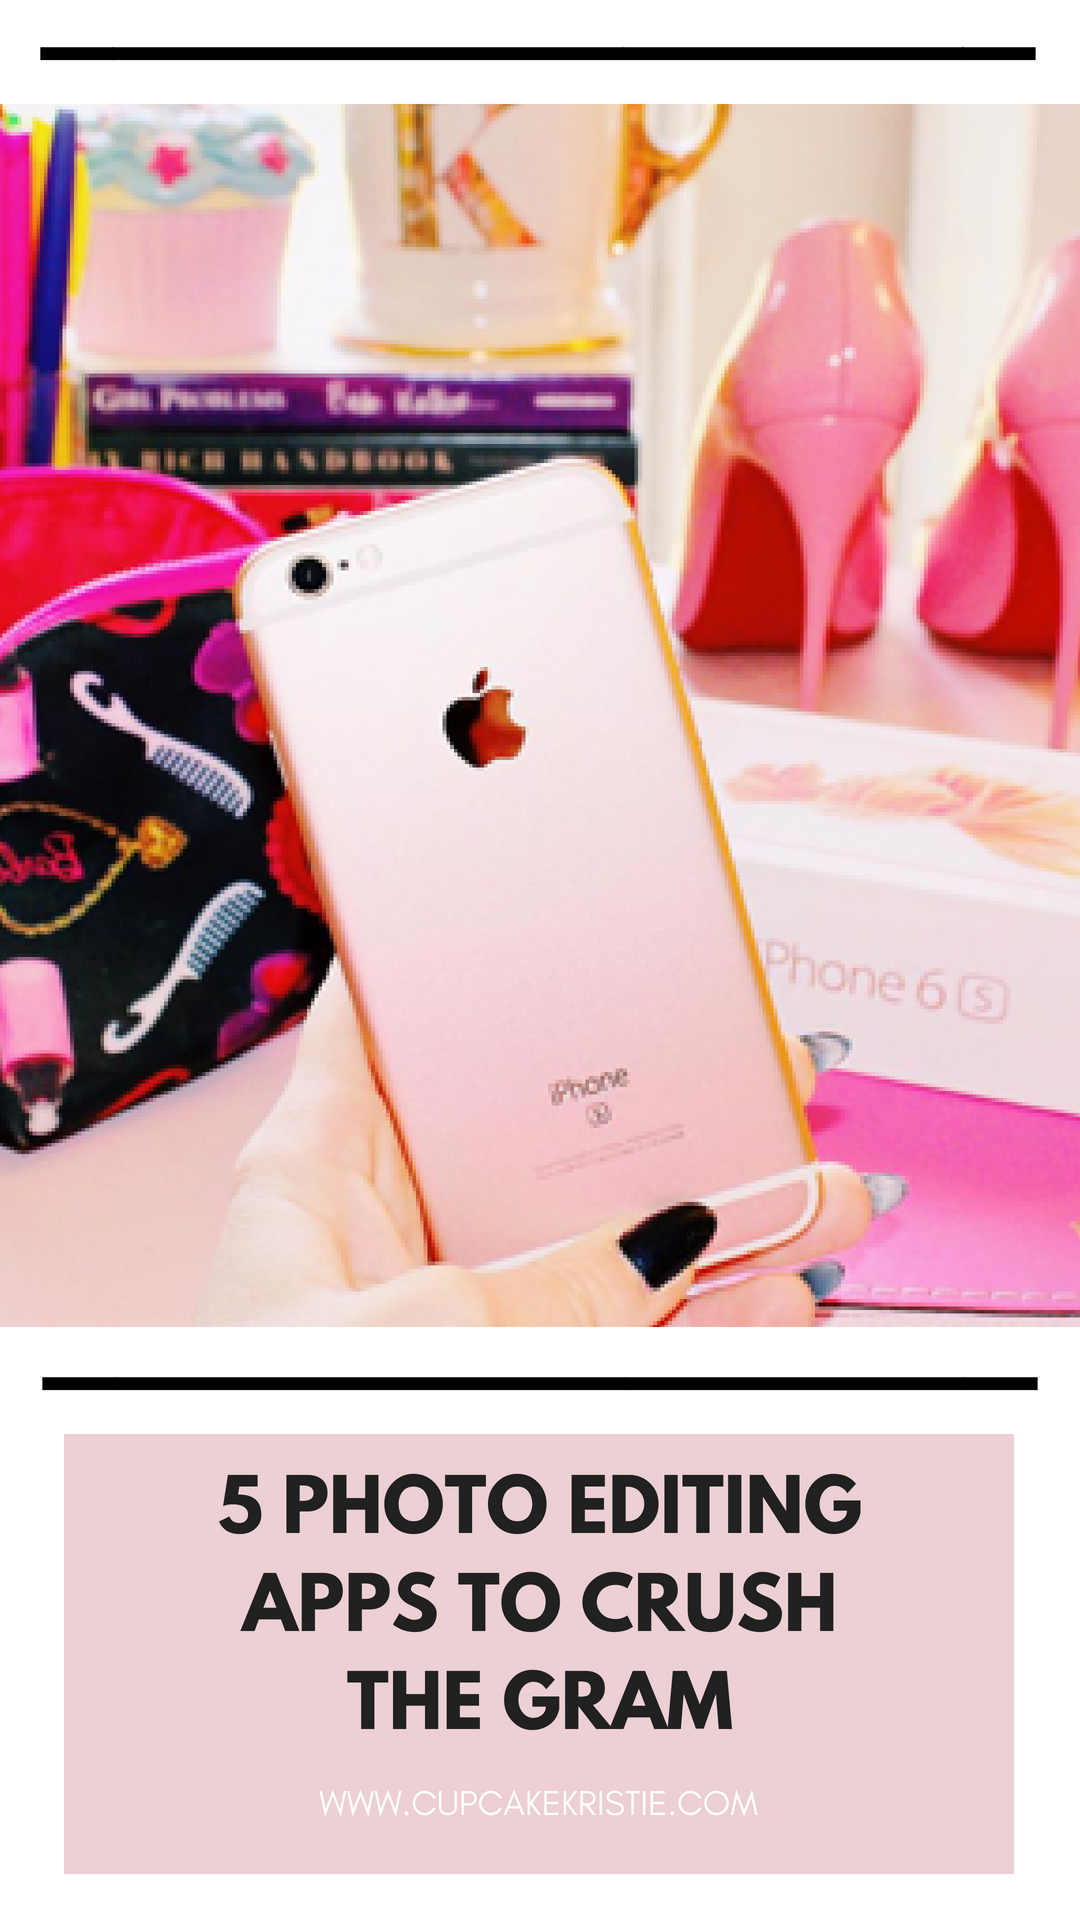 HOW TO TAKE YOUR OWN PICS + EDIT THEM ON IPHONE Apps